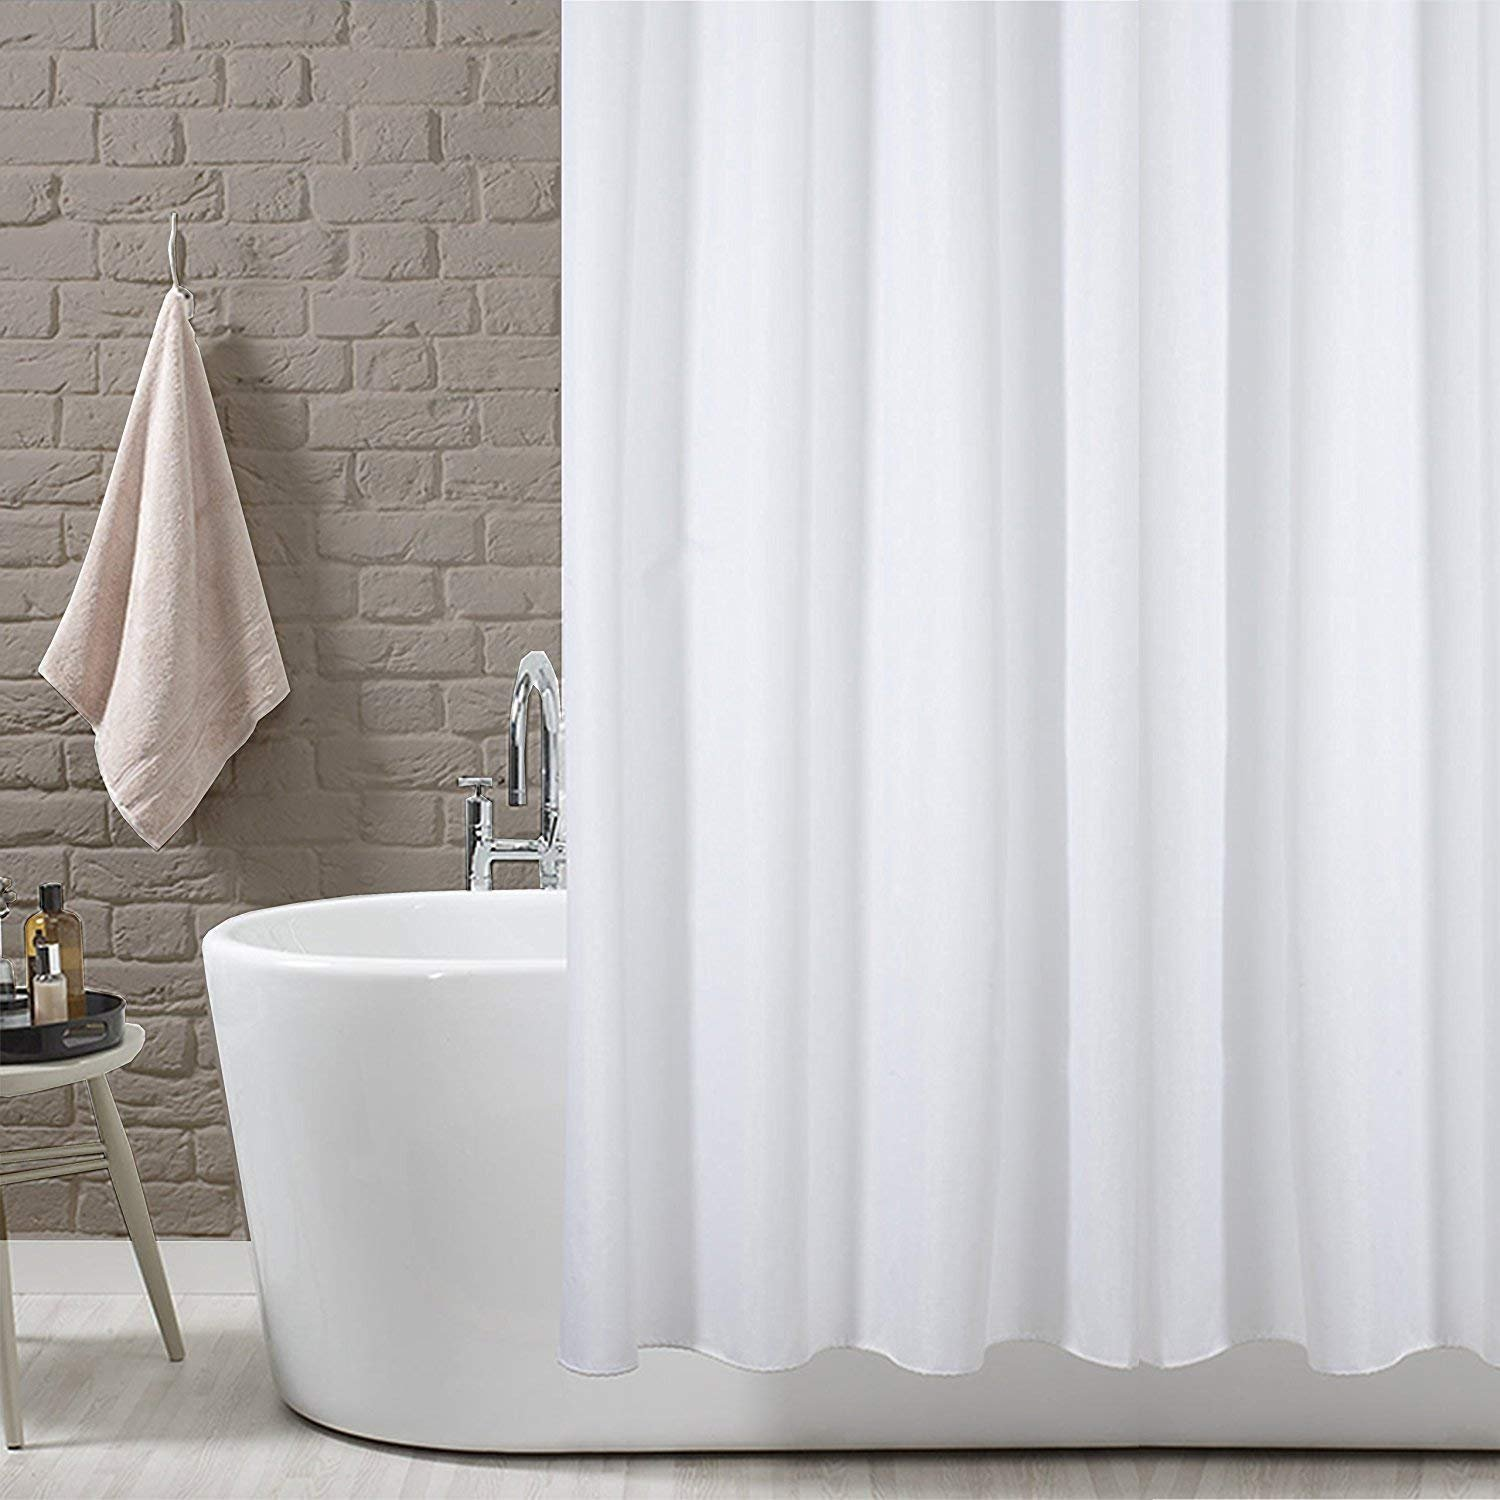 YOLOPLUS Shower Curtain Polyester Fabric Extra Long Mildew Resistant Waterproof/Water-Repellent Antibacterial For Bathroom Hotel 72x78  Inch- White